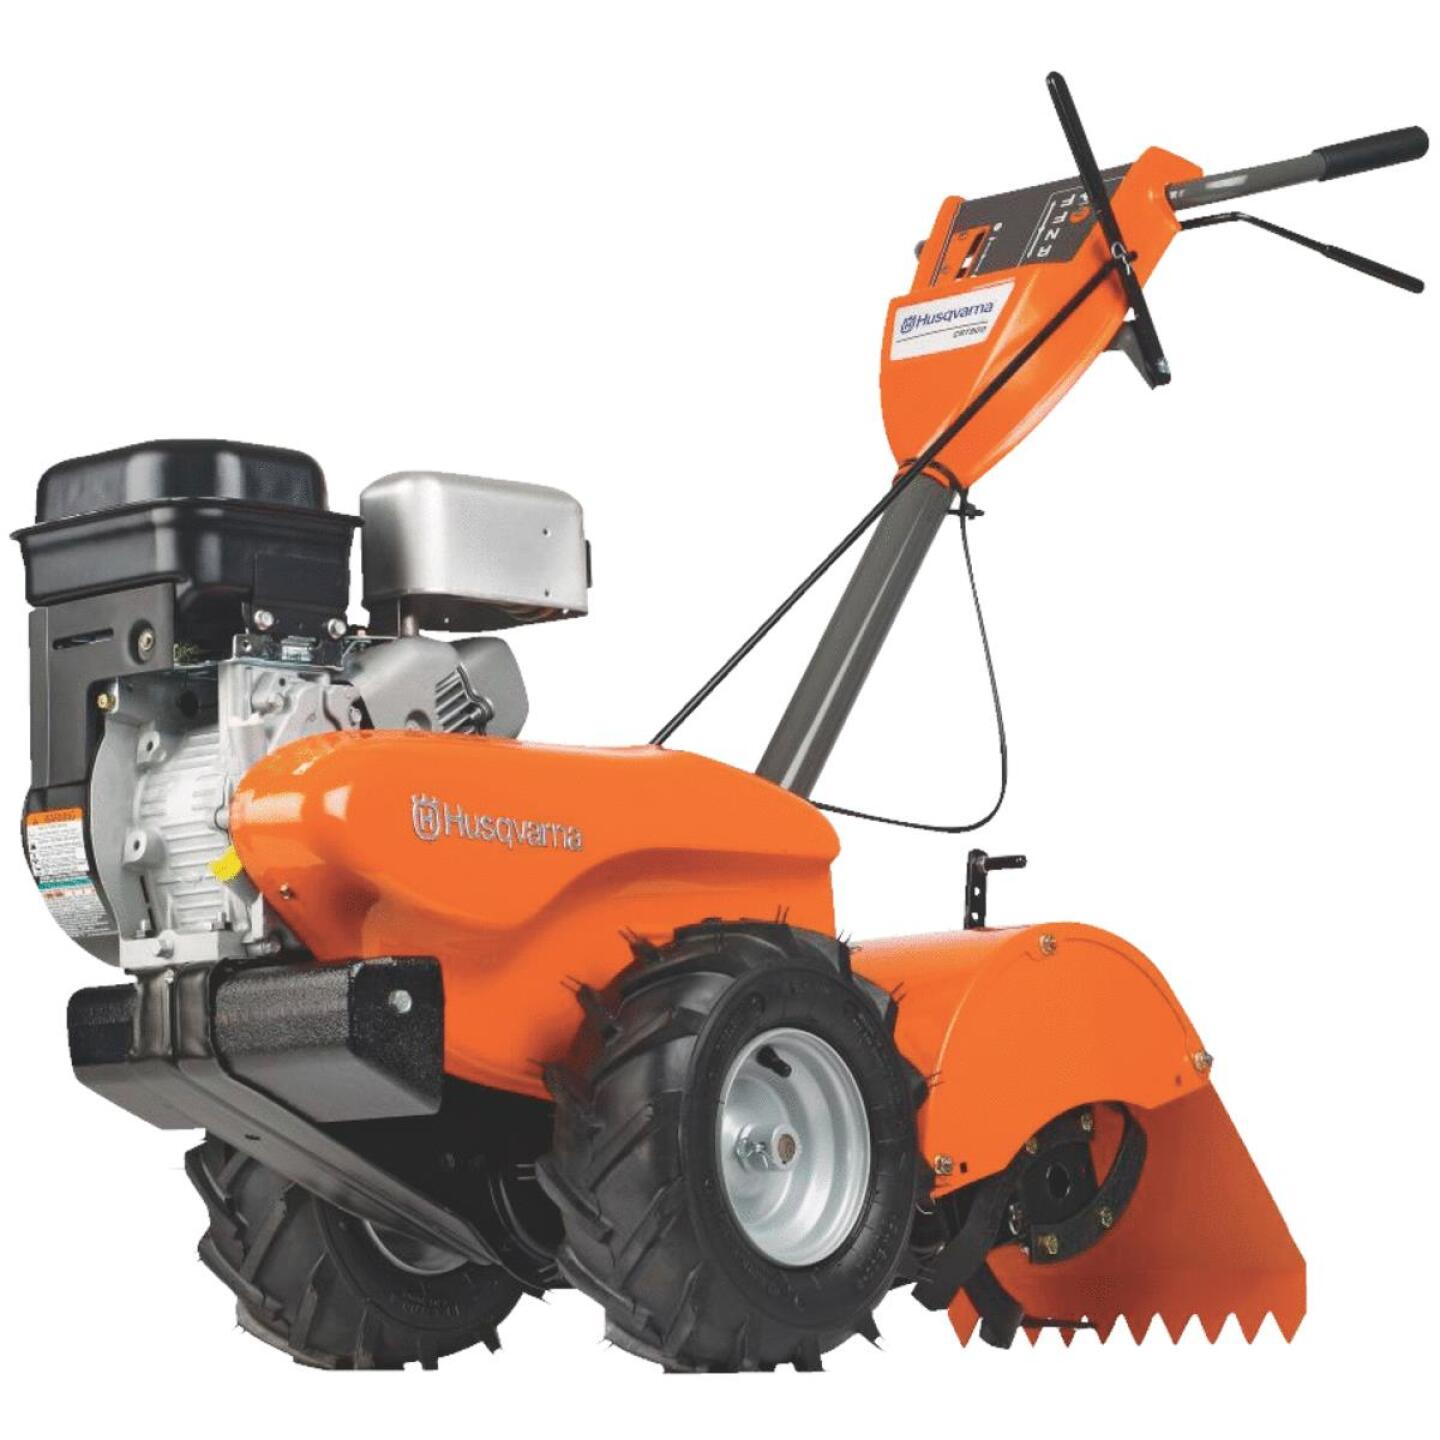 Husqvarna 14 In. 208cc Rear Tine Counter-Rotating Garden Tiller Image 1